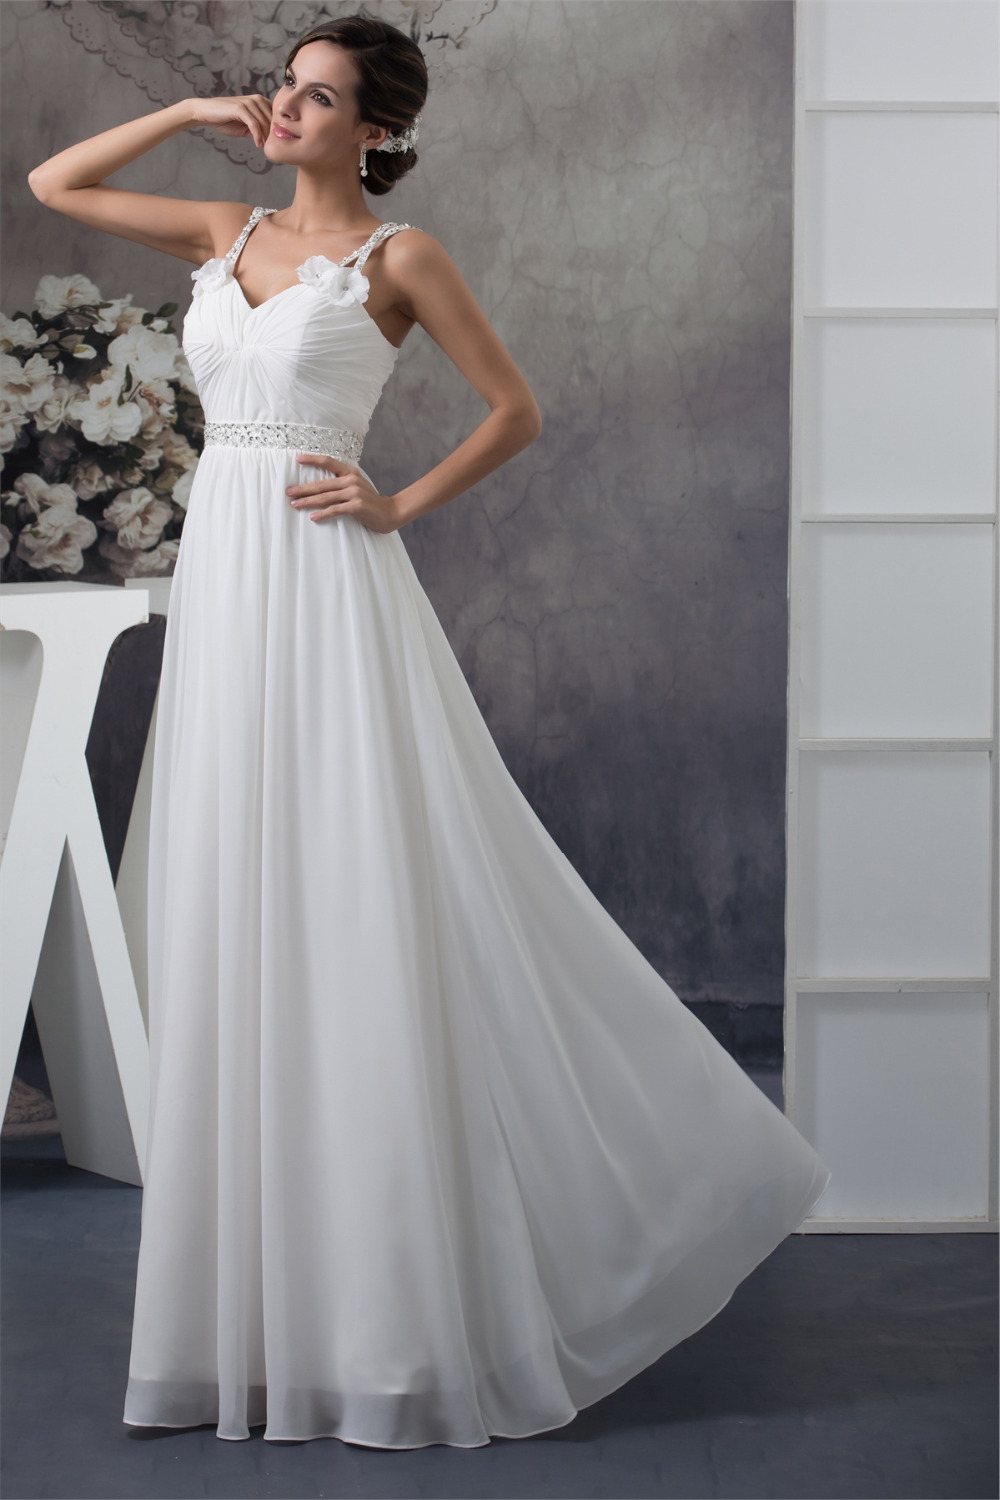 quick delivery wedding dress